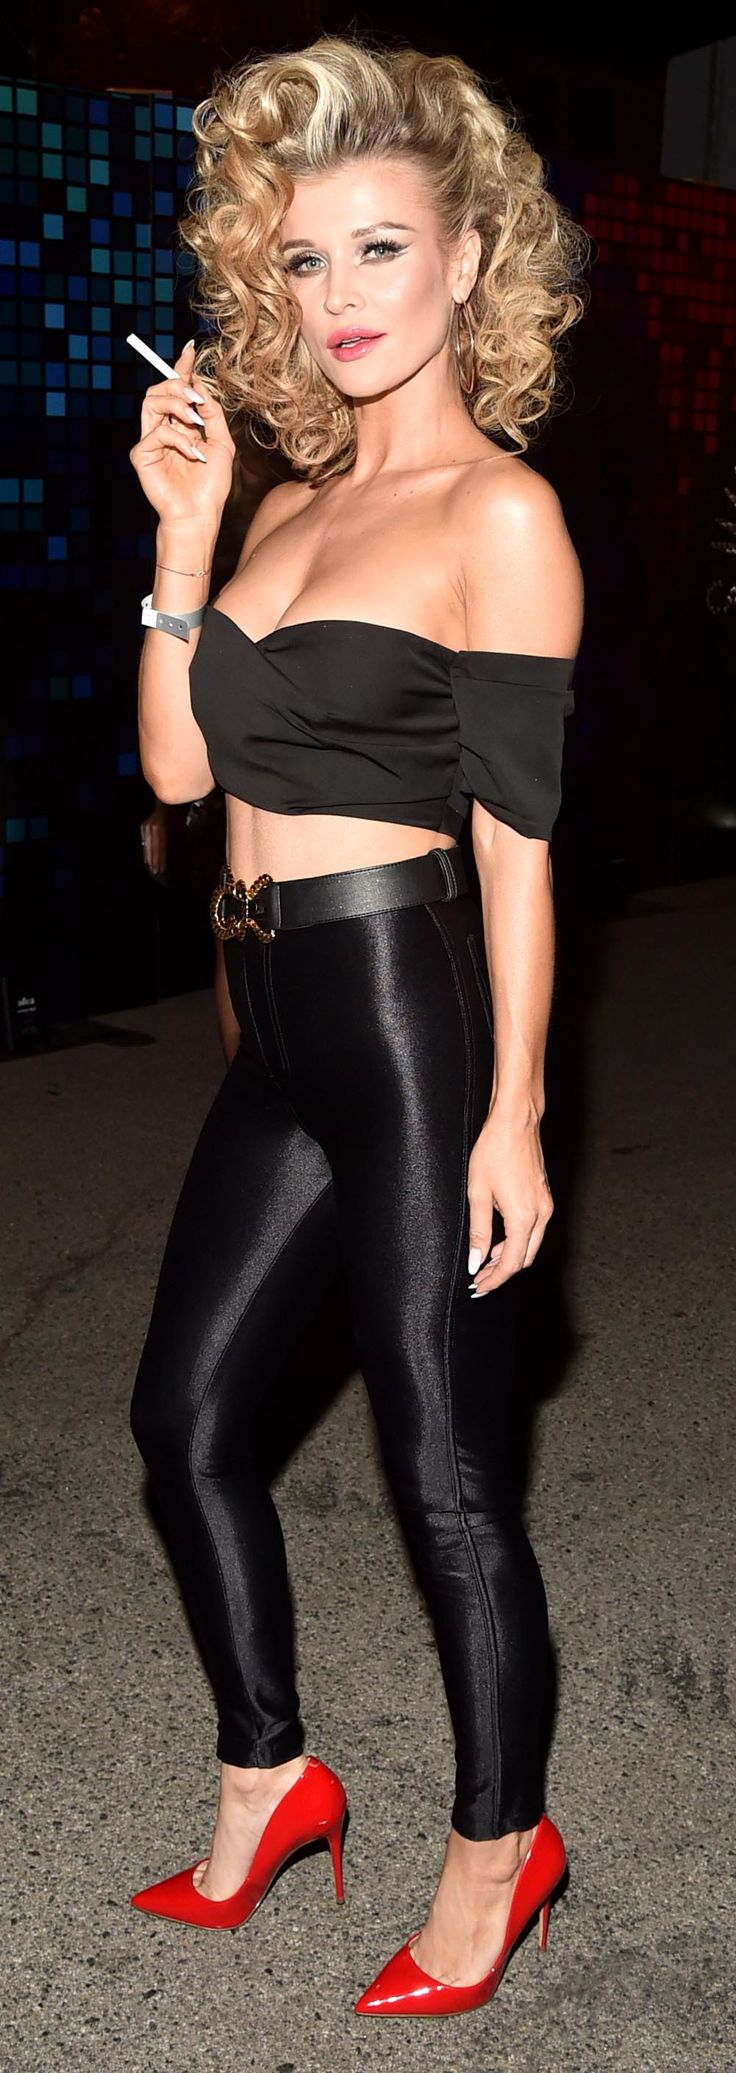 Joanna Krupa rocked it as Sandy from Grease in an amazing Halloween costume at George Clooney's annual Casamigos 70's inspired party. Wearing the iconic black leather outfit, which Olivia Newton-John at the end of the 1978 film, Krupa really nailed it with her curly blonde hair and red shoes #JoannaKrupa #Grease #Halloween